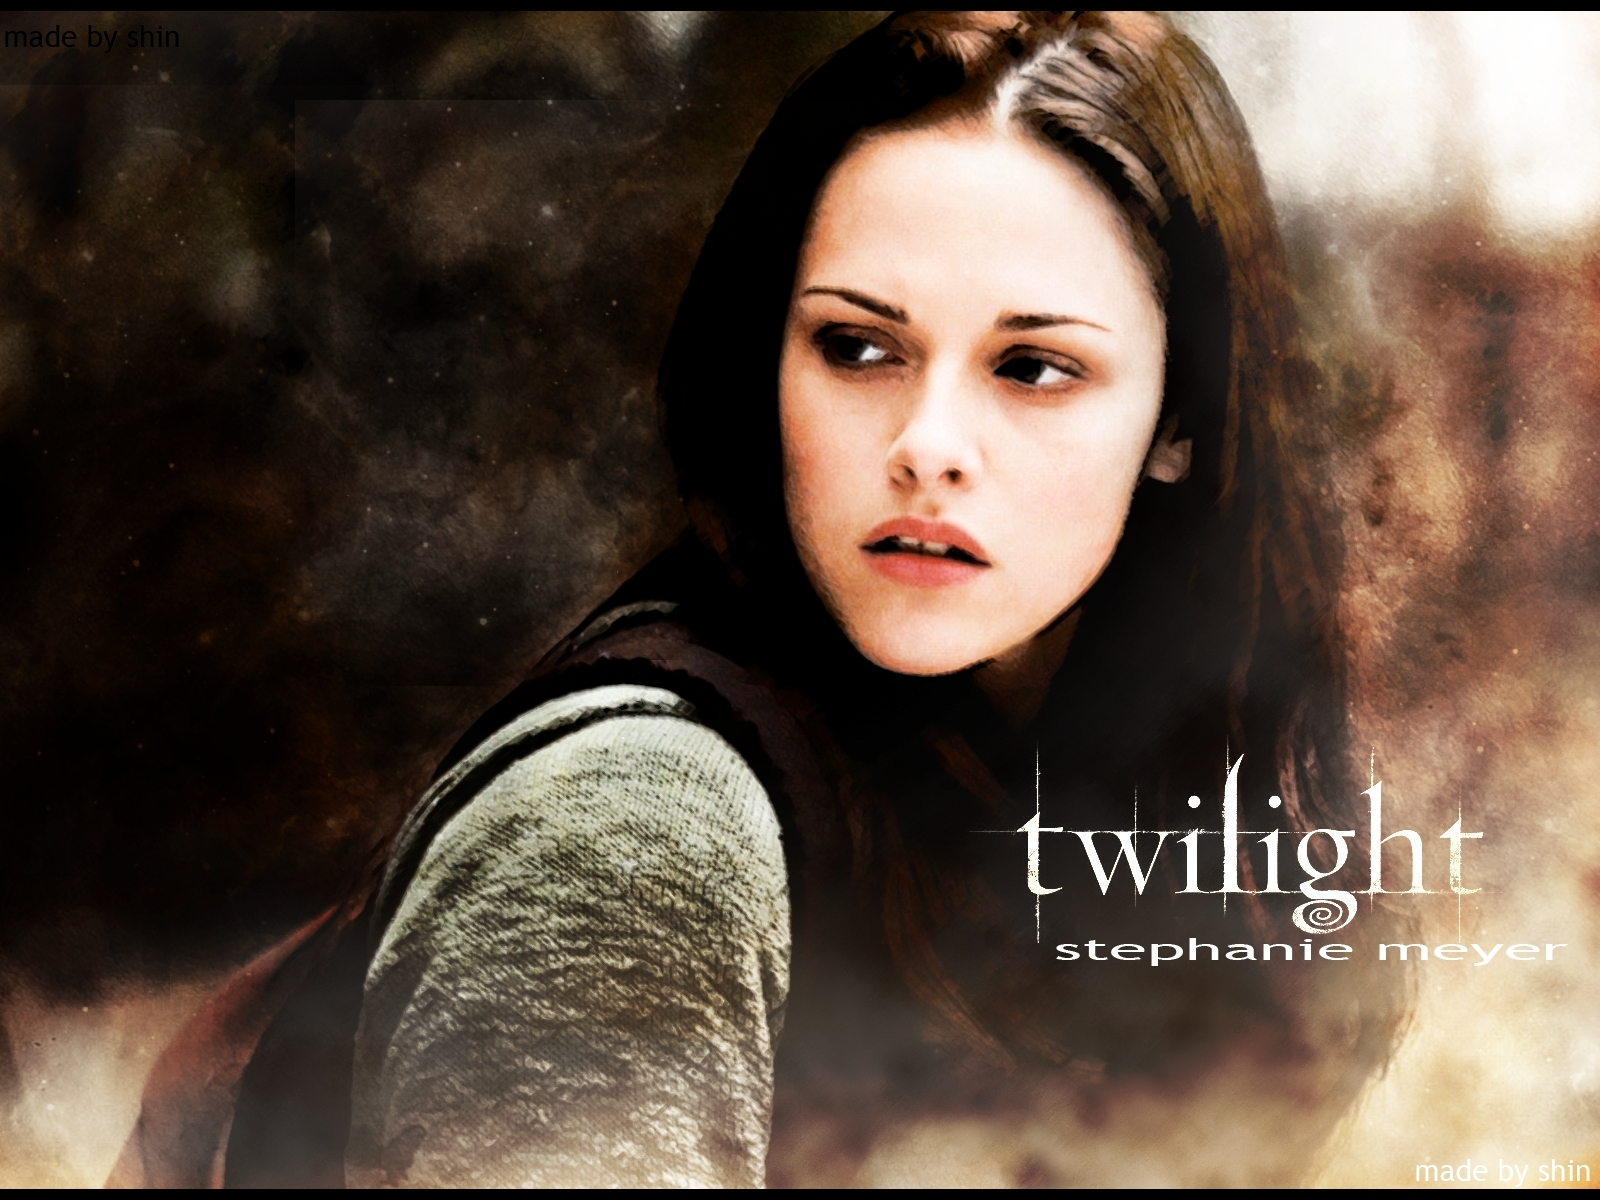 http://2.bp.blogspot.com/-OnrB6RRfYho/Tq683wENHiI/AAAAAAAAISE/9BWjwqONpOc/s1600/Twilight-Bella-Fan-wallpaper-twilight-movie-8898578-1600-1200.jpg